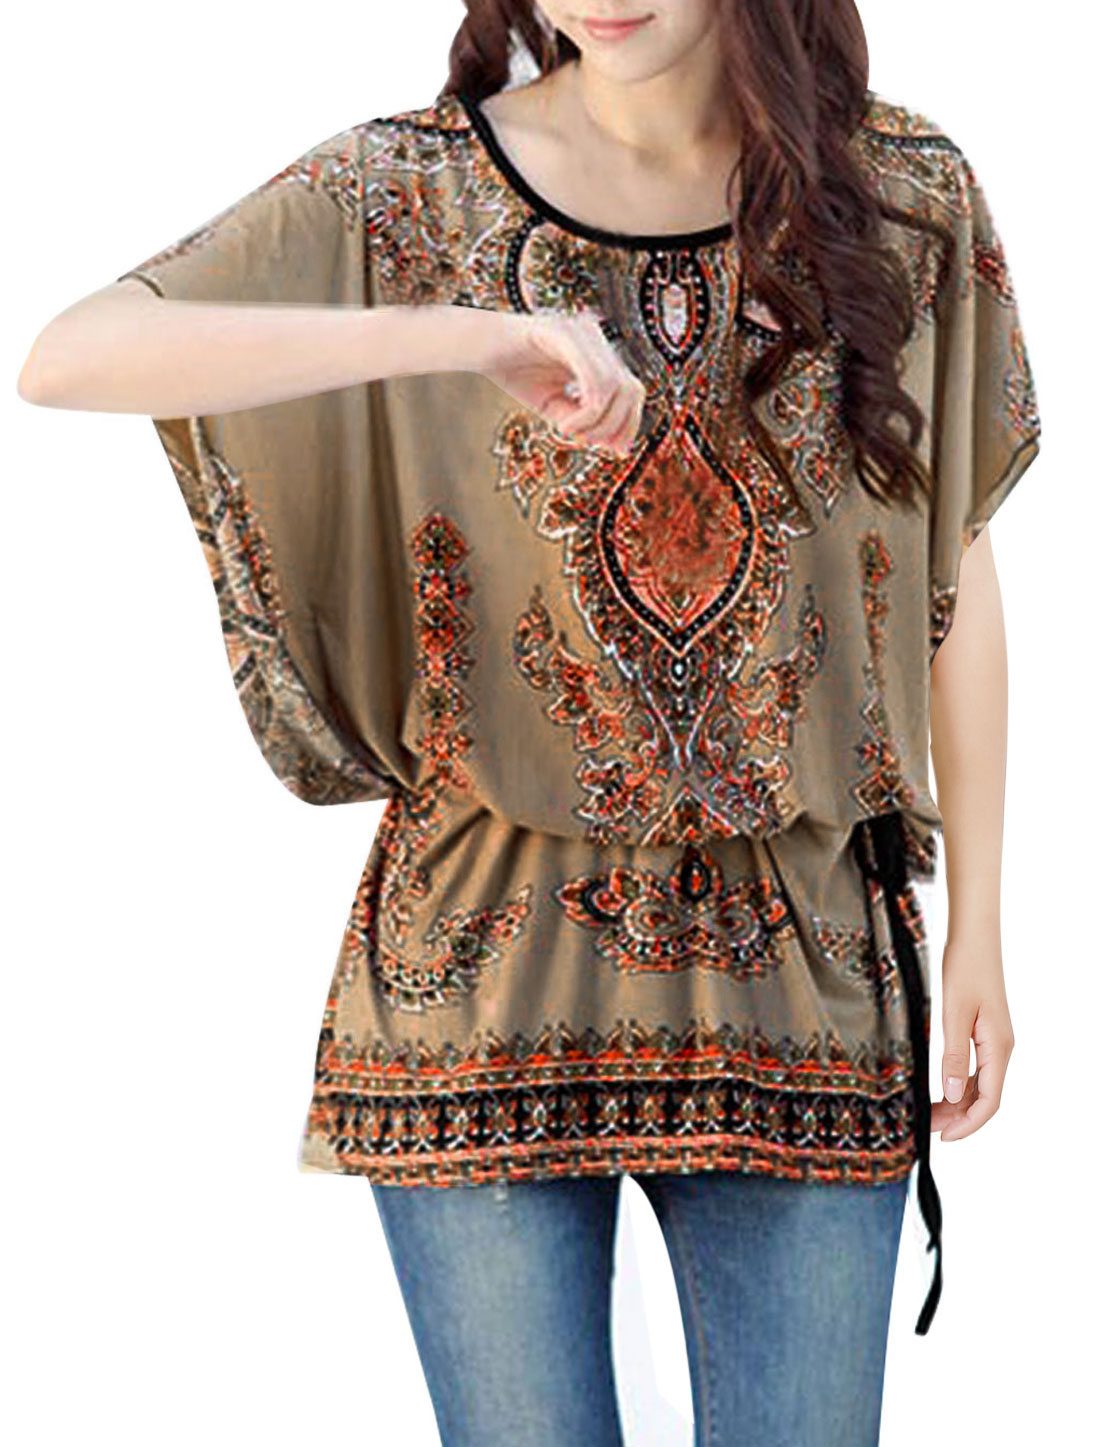 Ladies Batwing Sleeve Round Neck Stretchy Tunic Shirt Beige L